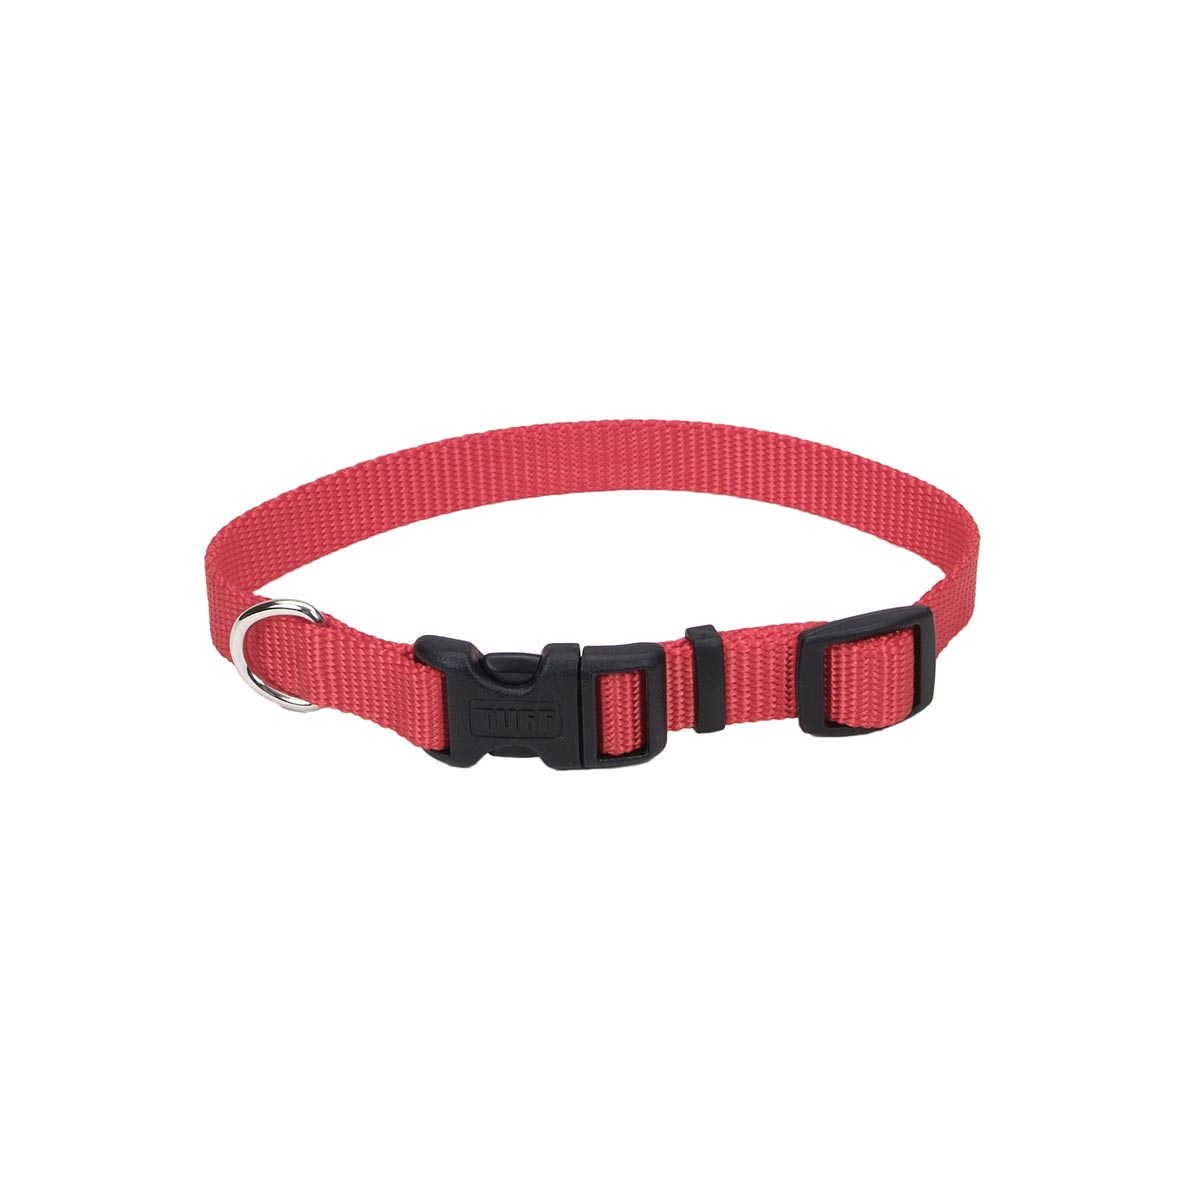 5/8 inch Coastal Adjustable Red Collar for Animals with Plastic Snaps